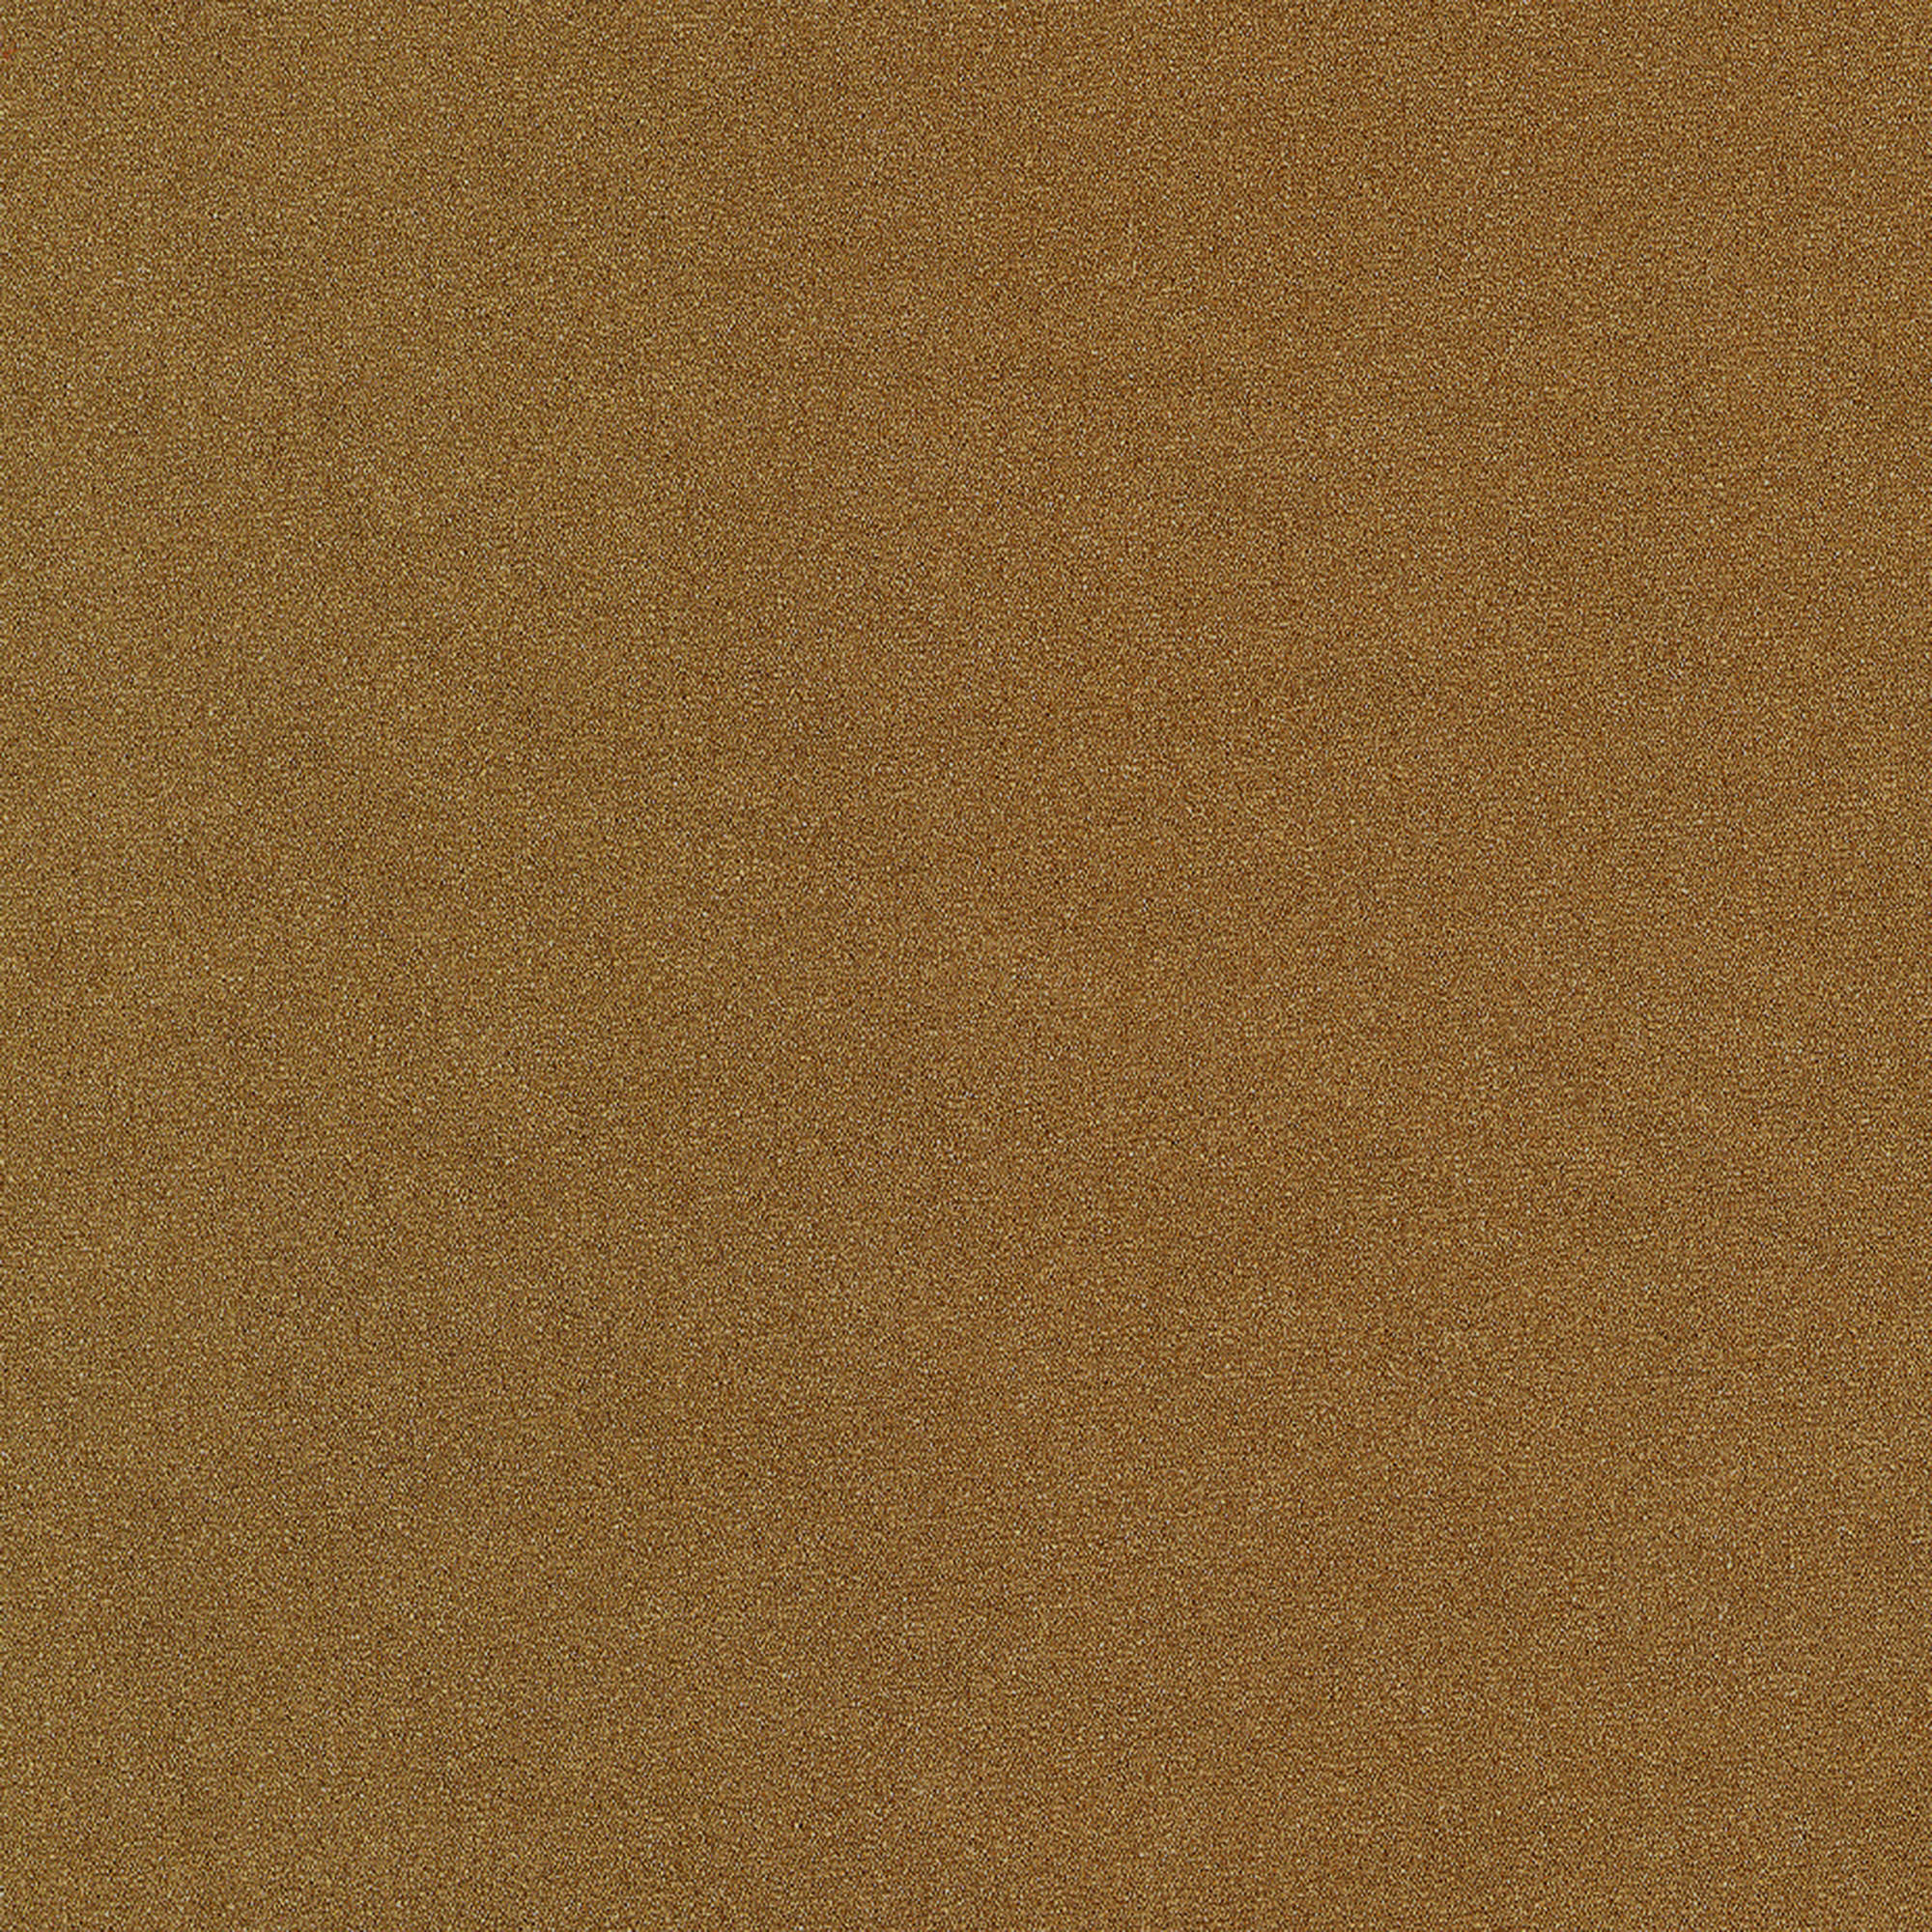 Shason Textile Upholstery and Craft Ultrasuede Solid Fabric, Multiple Colors